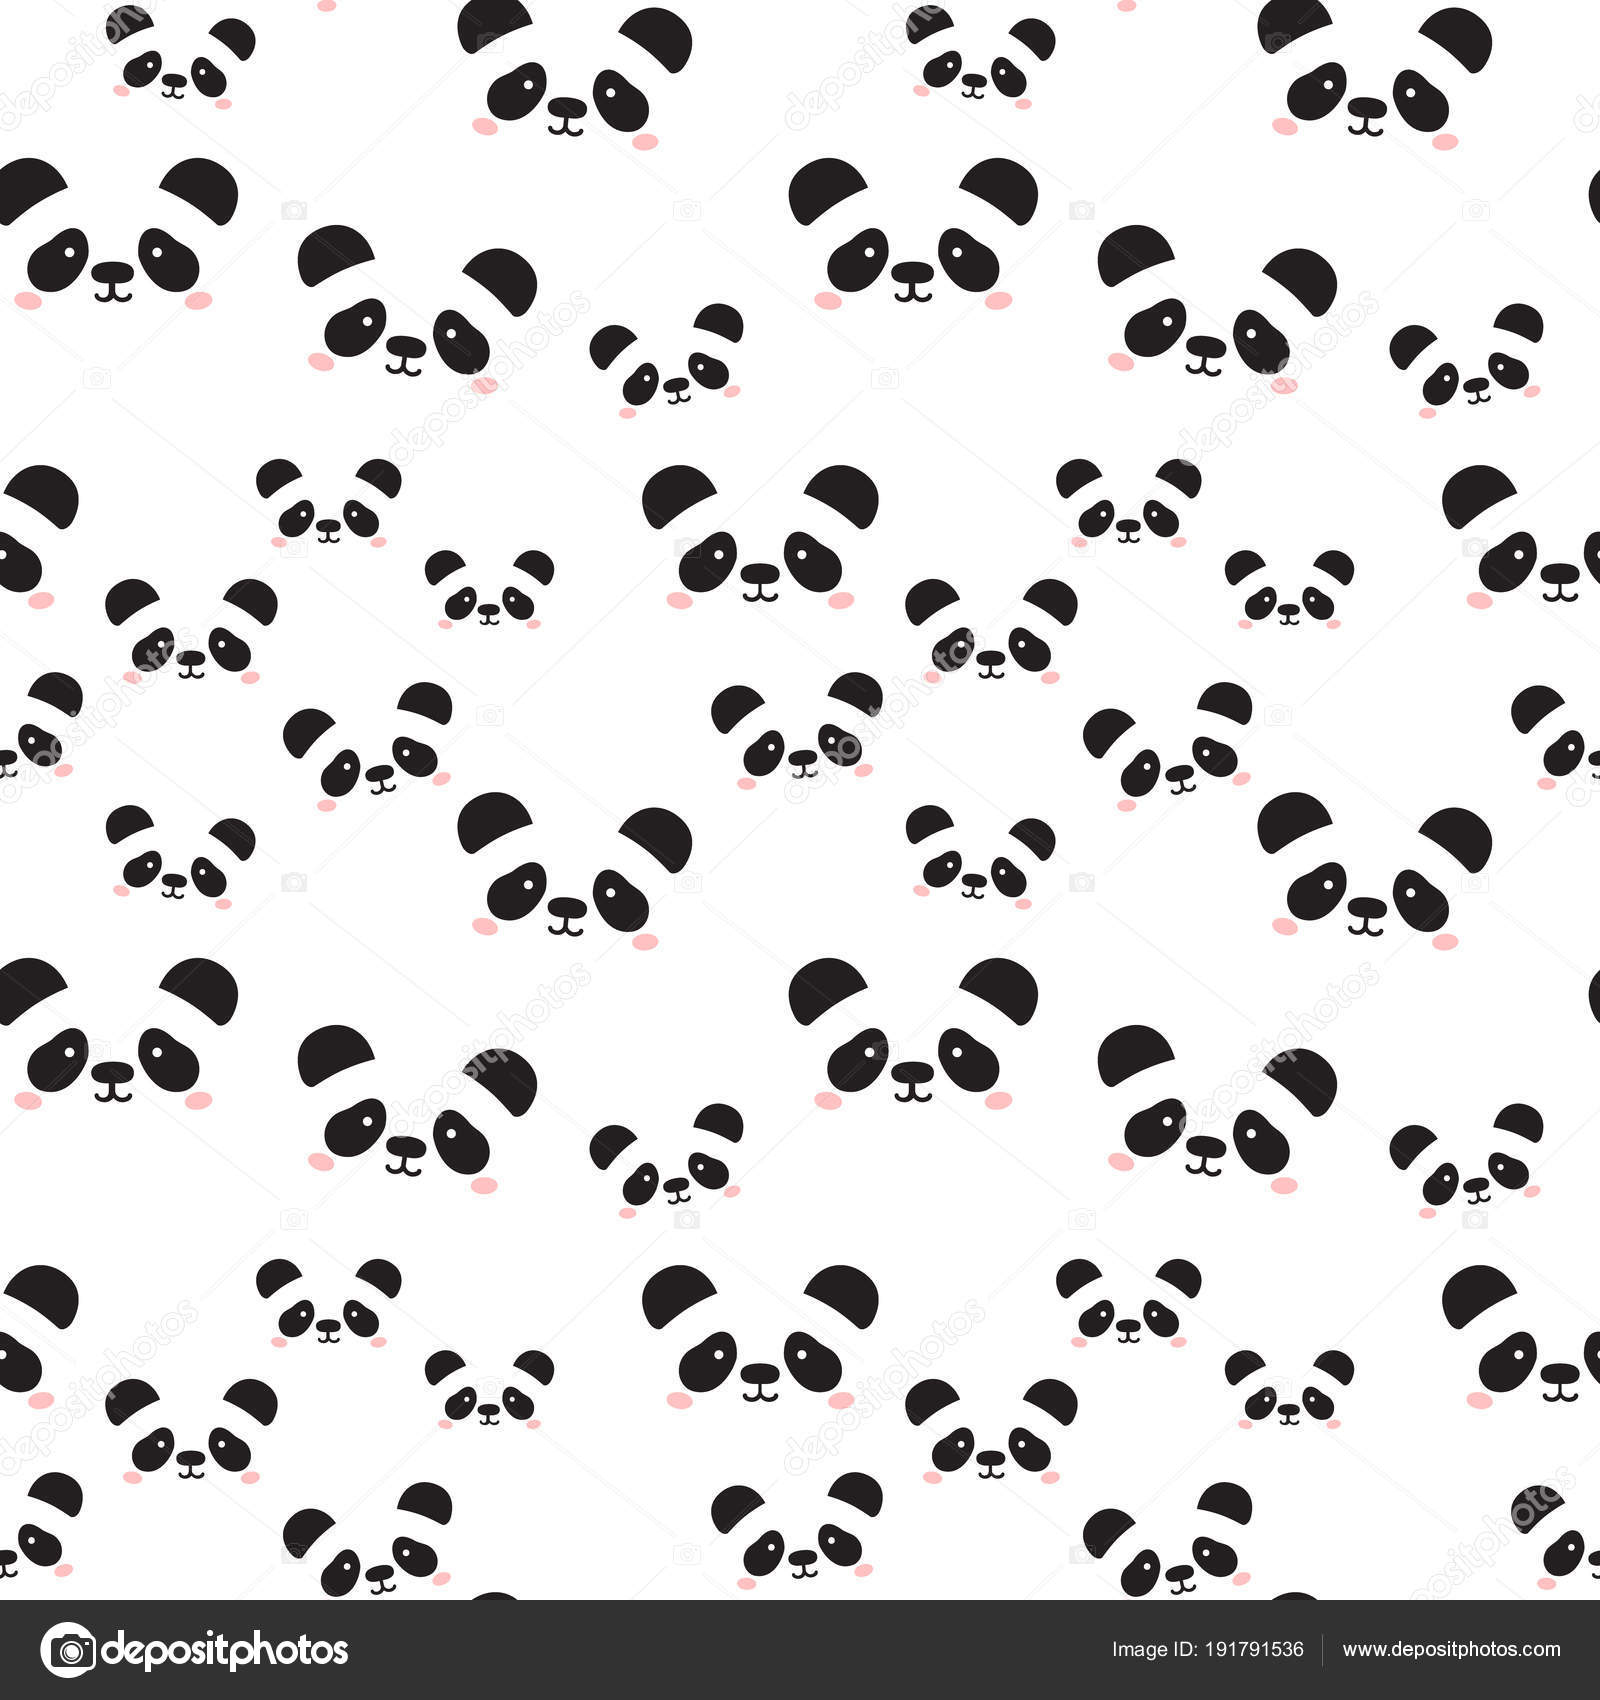 Cute Panda Face Seamless Wallpaper Seamless Pattern Of